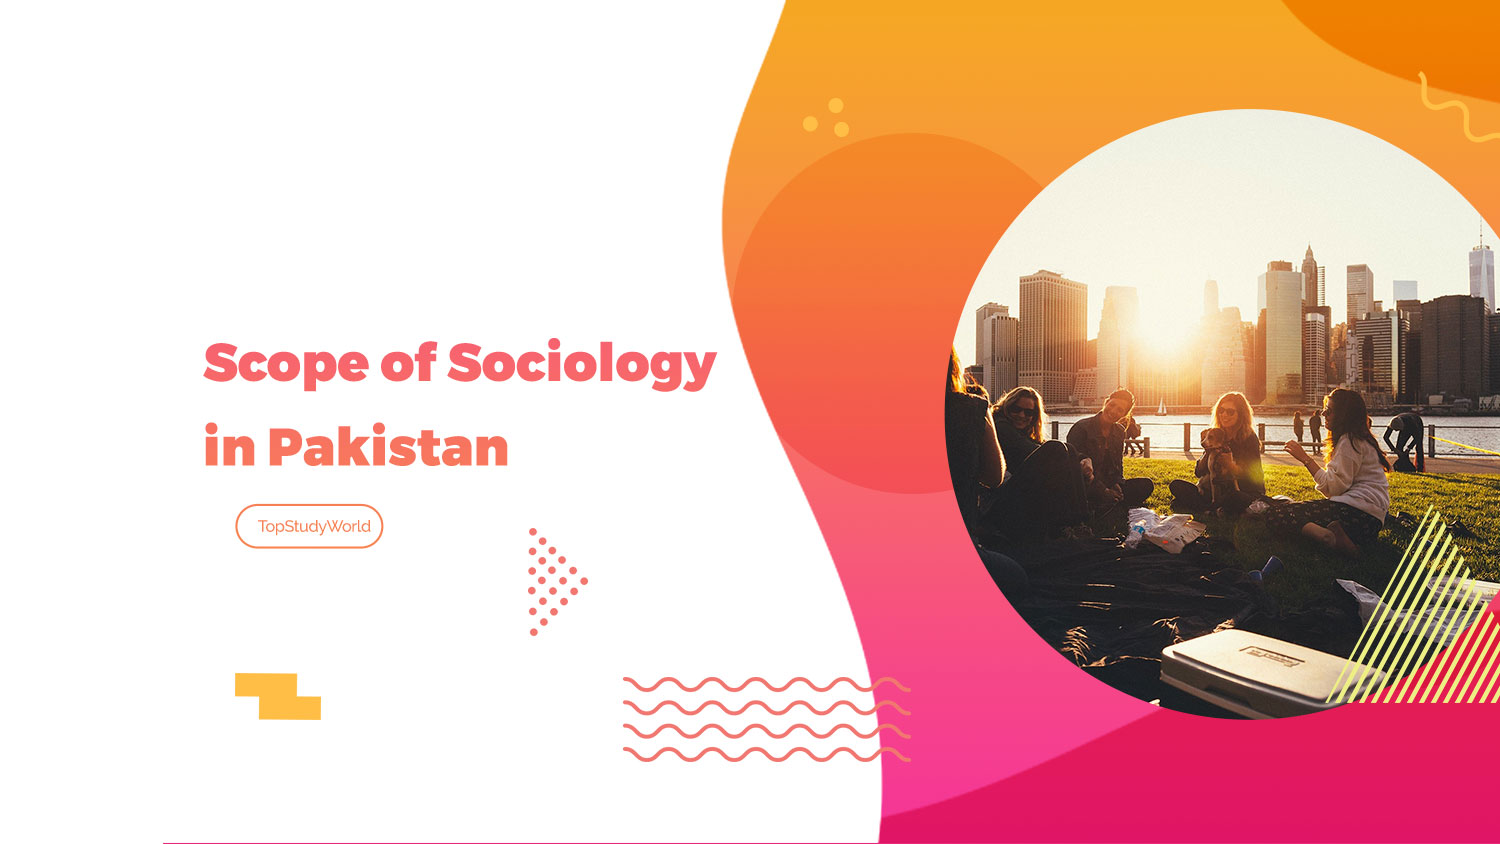 Scope of Sociology in Pakistan feature image